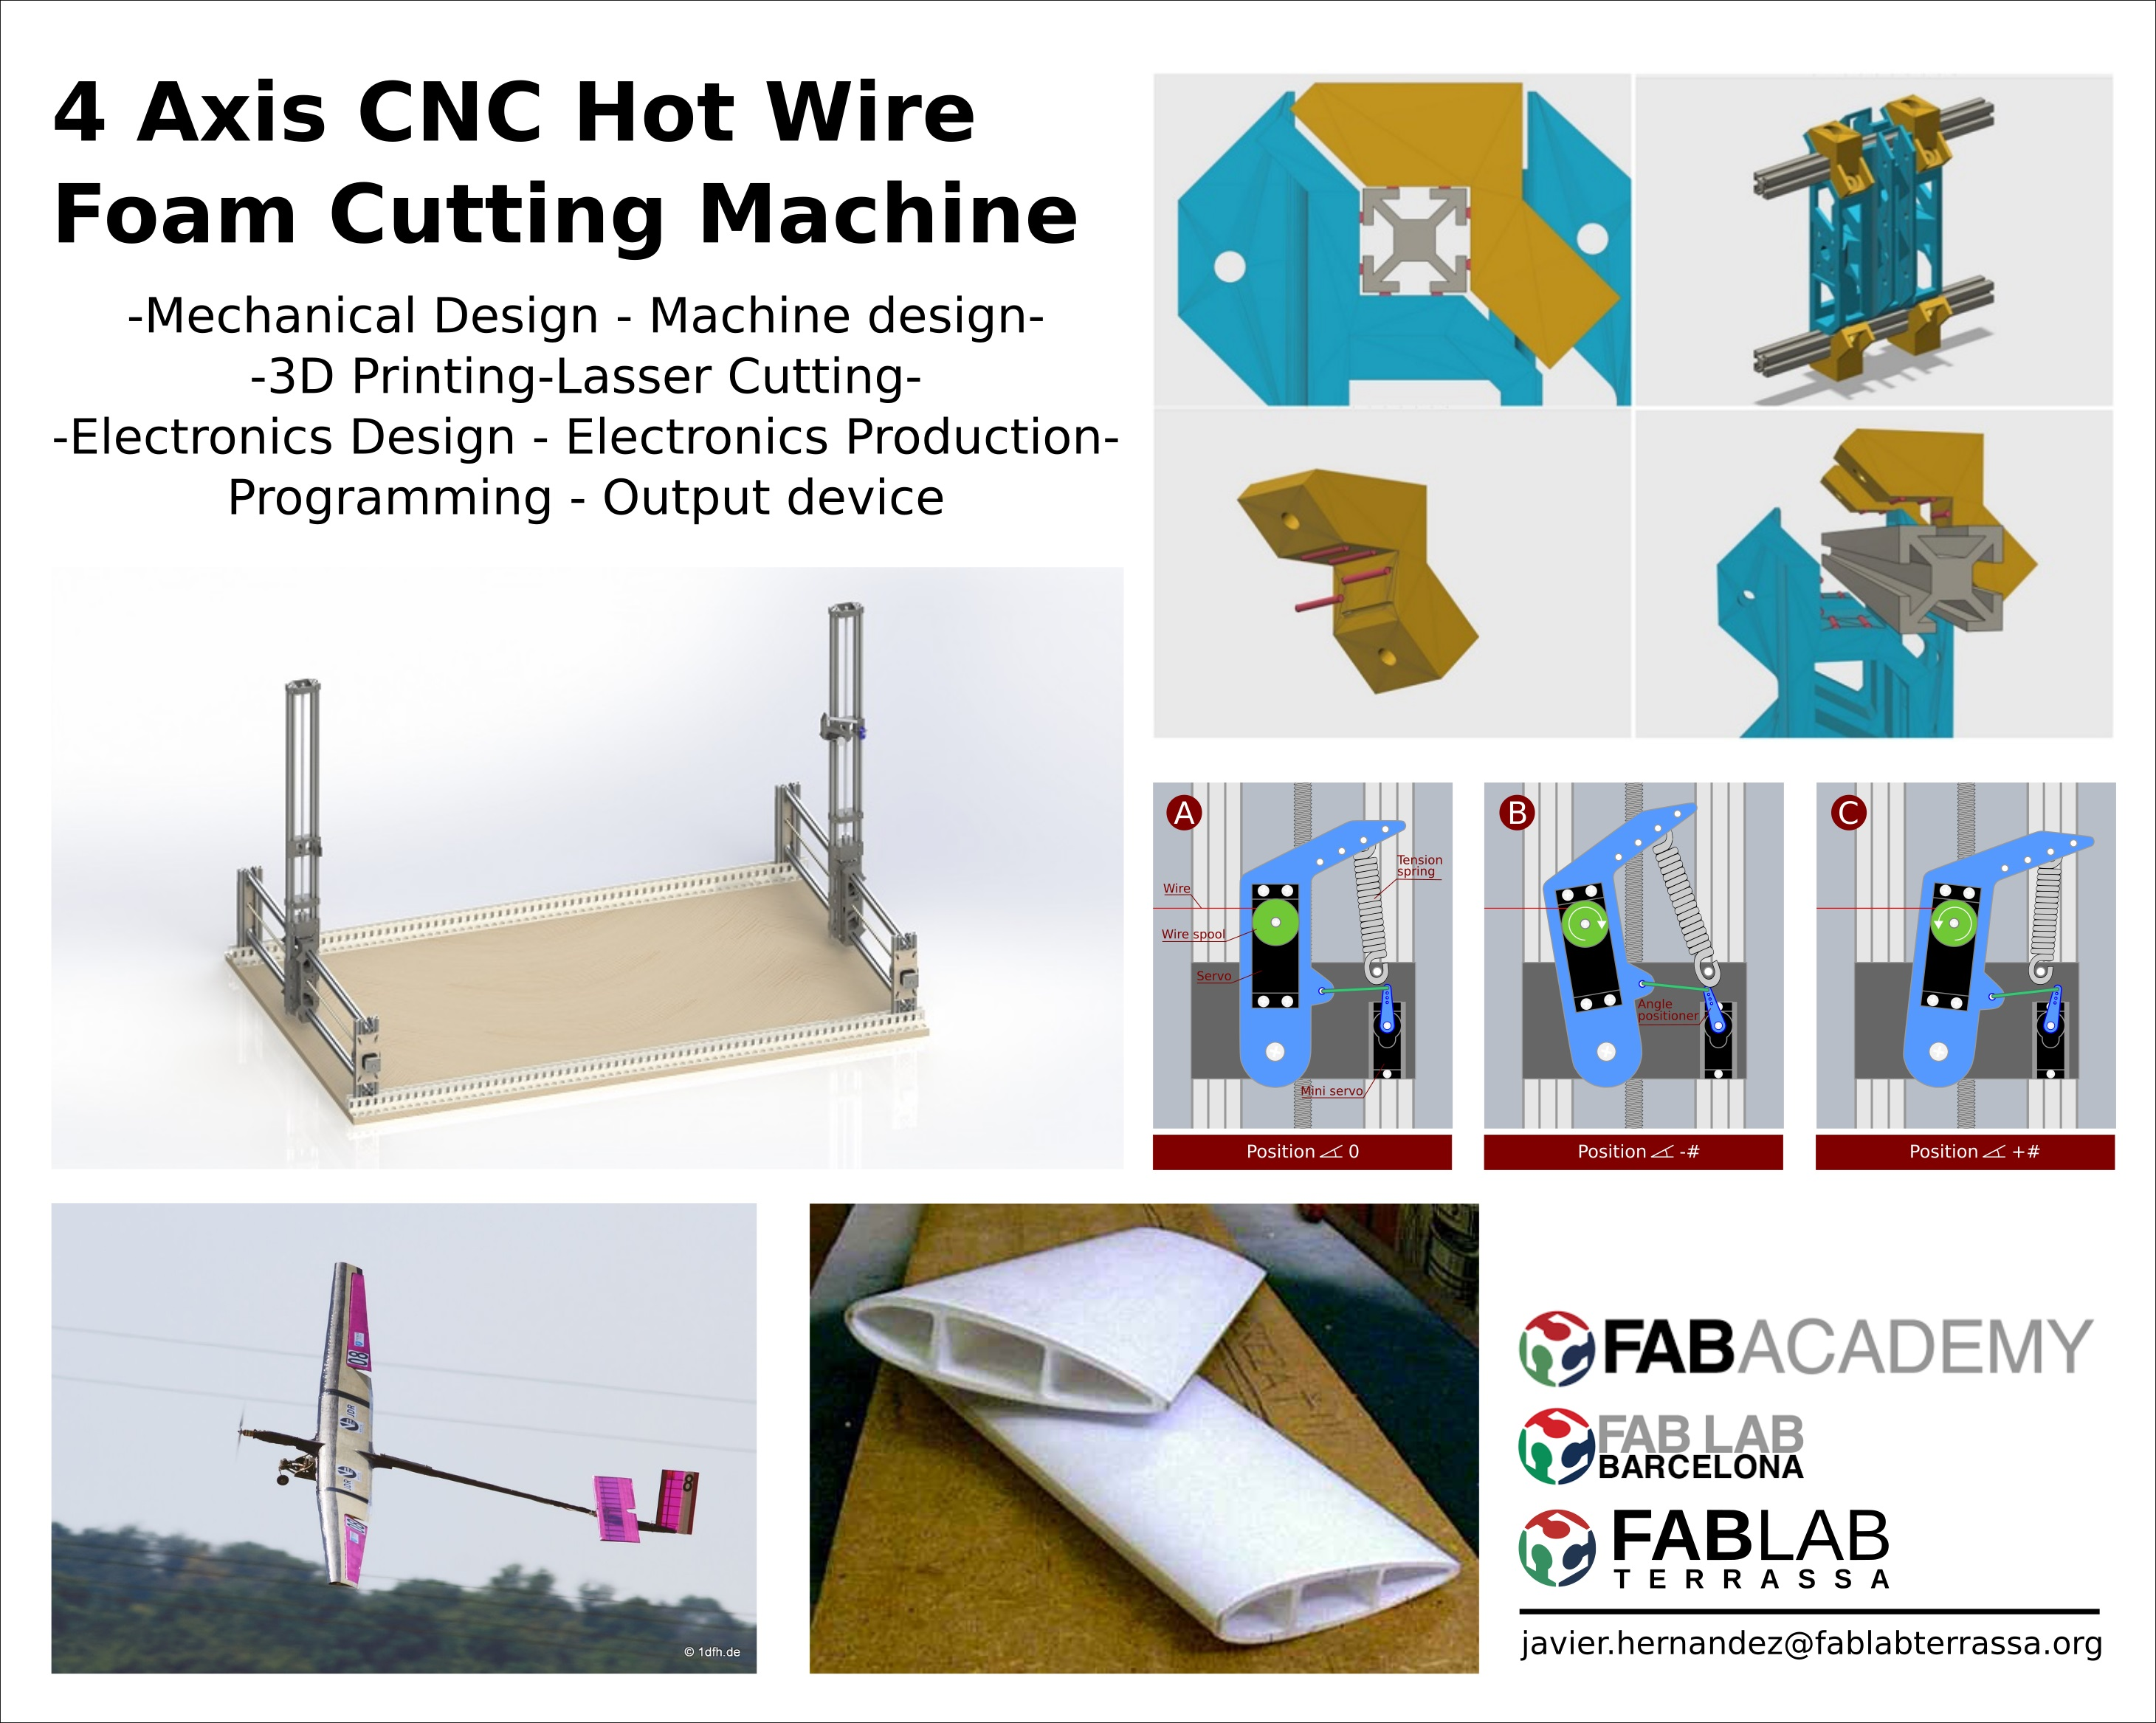 Fabacademy 2016 Cnc 4 Axis Wiring Diagram Hot Wire Foam Cutting Machine